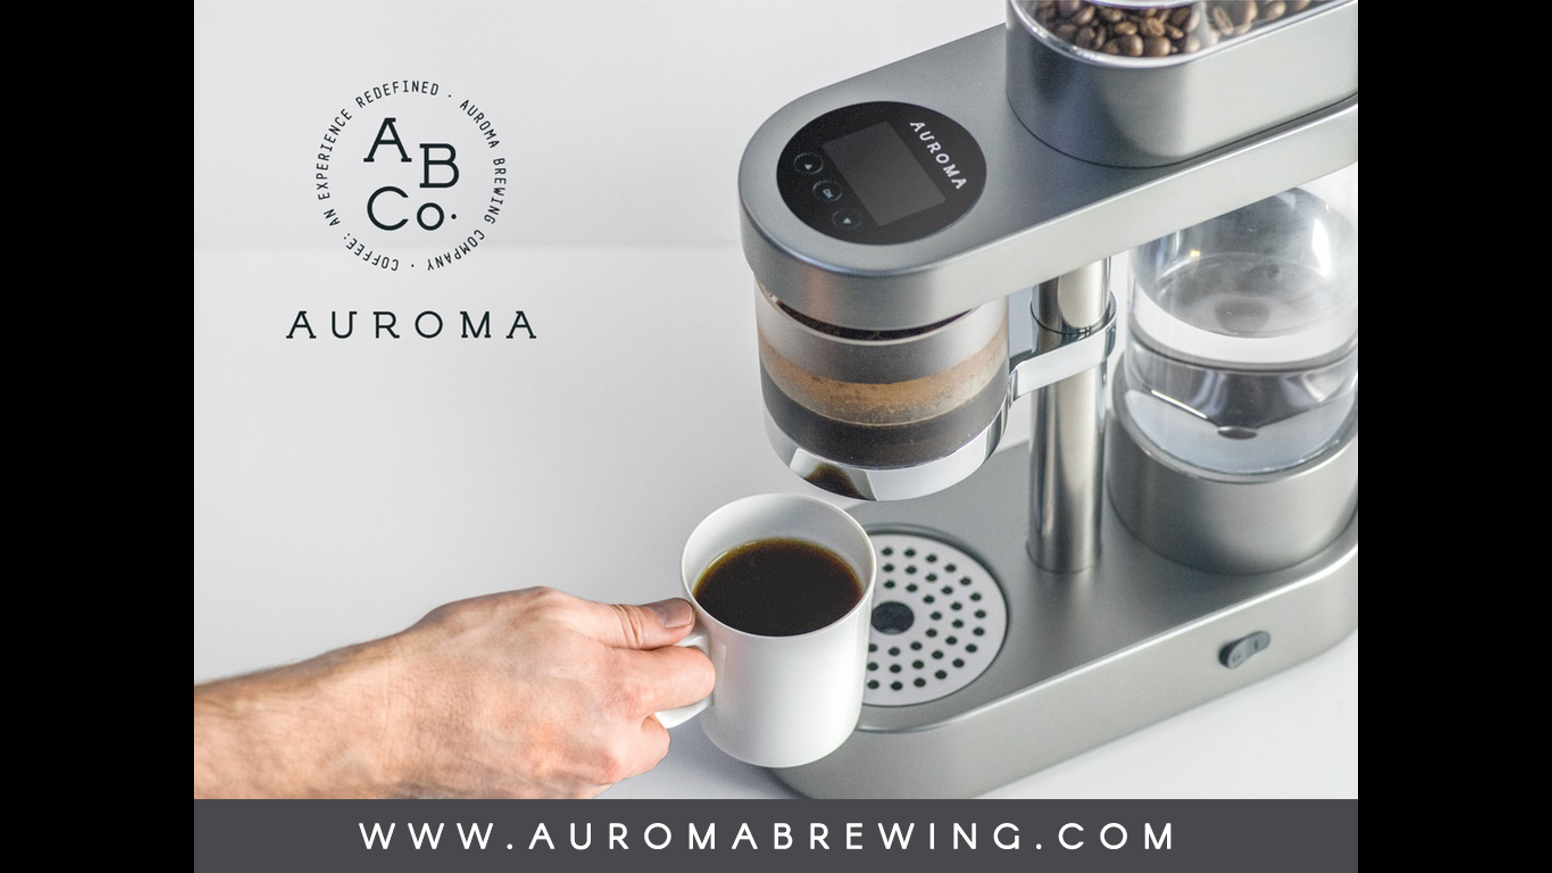 Delta Coffee Maker With Grinder : Auroma: Never Make Bad Coffee Again by Auroma Brewing Company Kickstarter